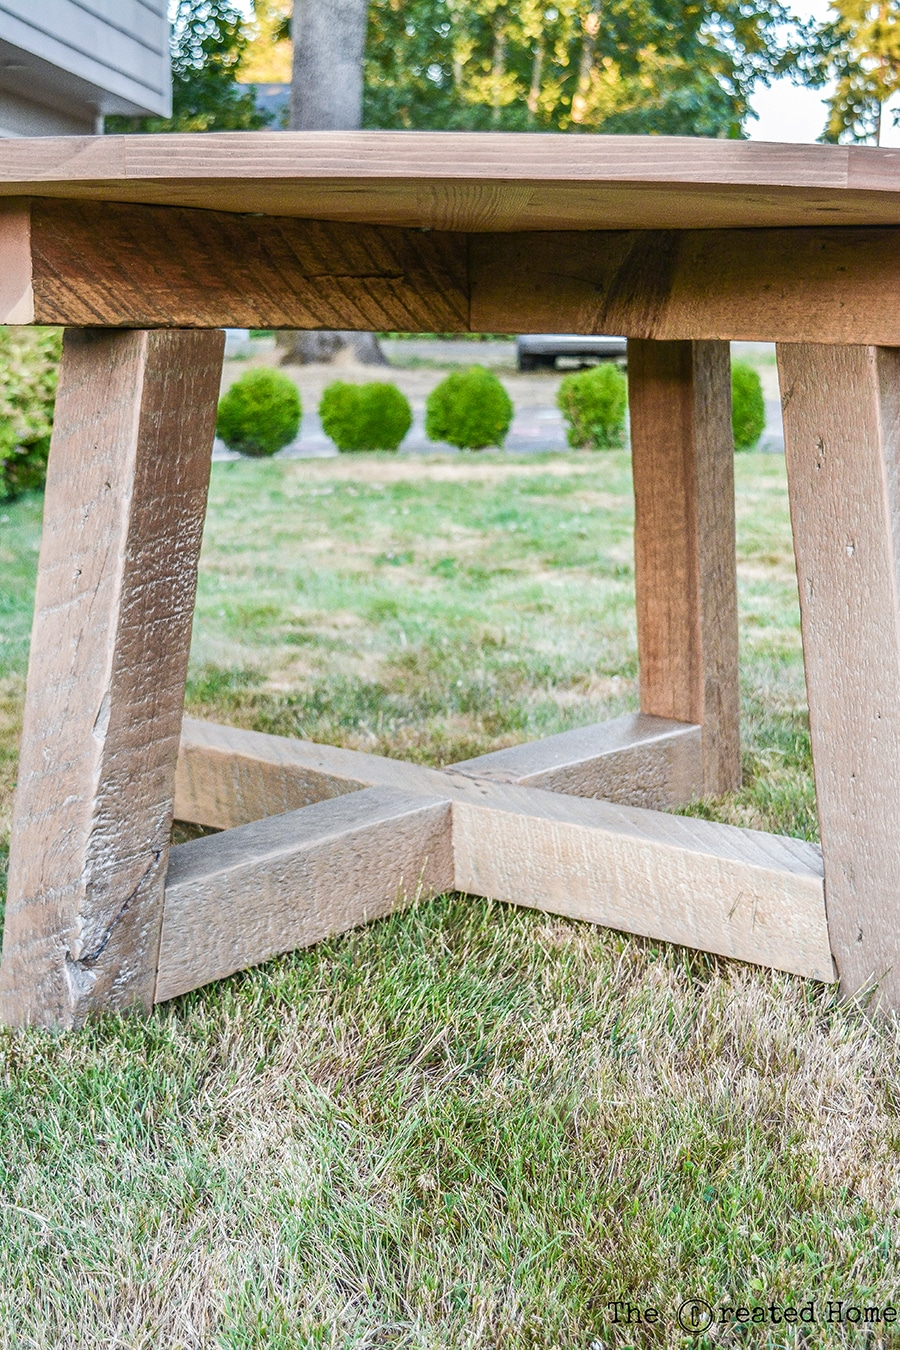 How to build a DIY round dining table from salvaged wood beams. Plans by Jen Woodhouse.